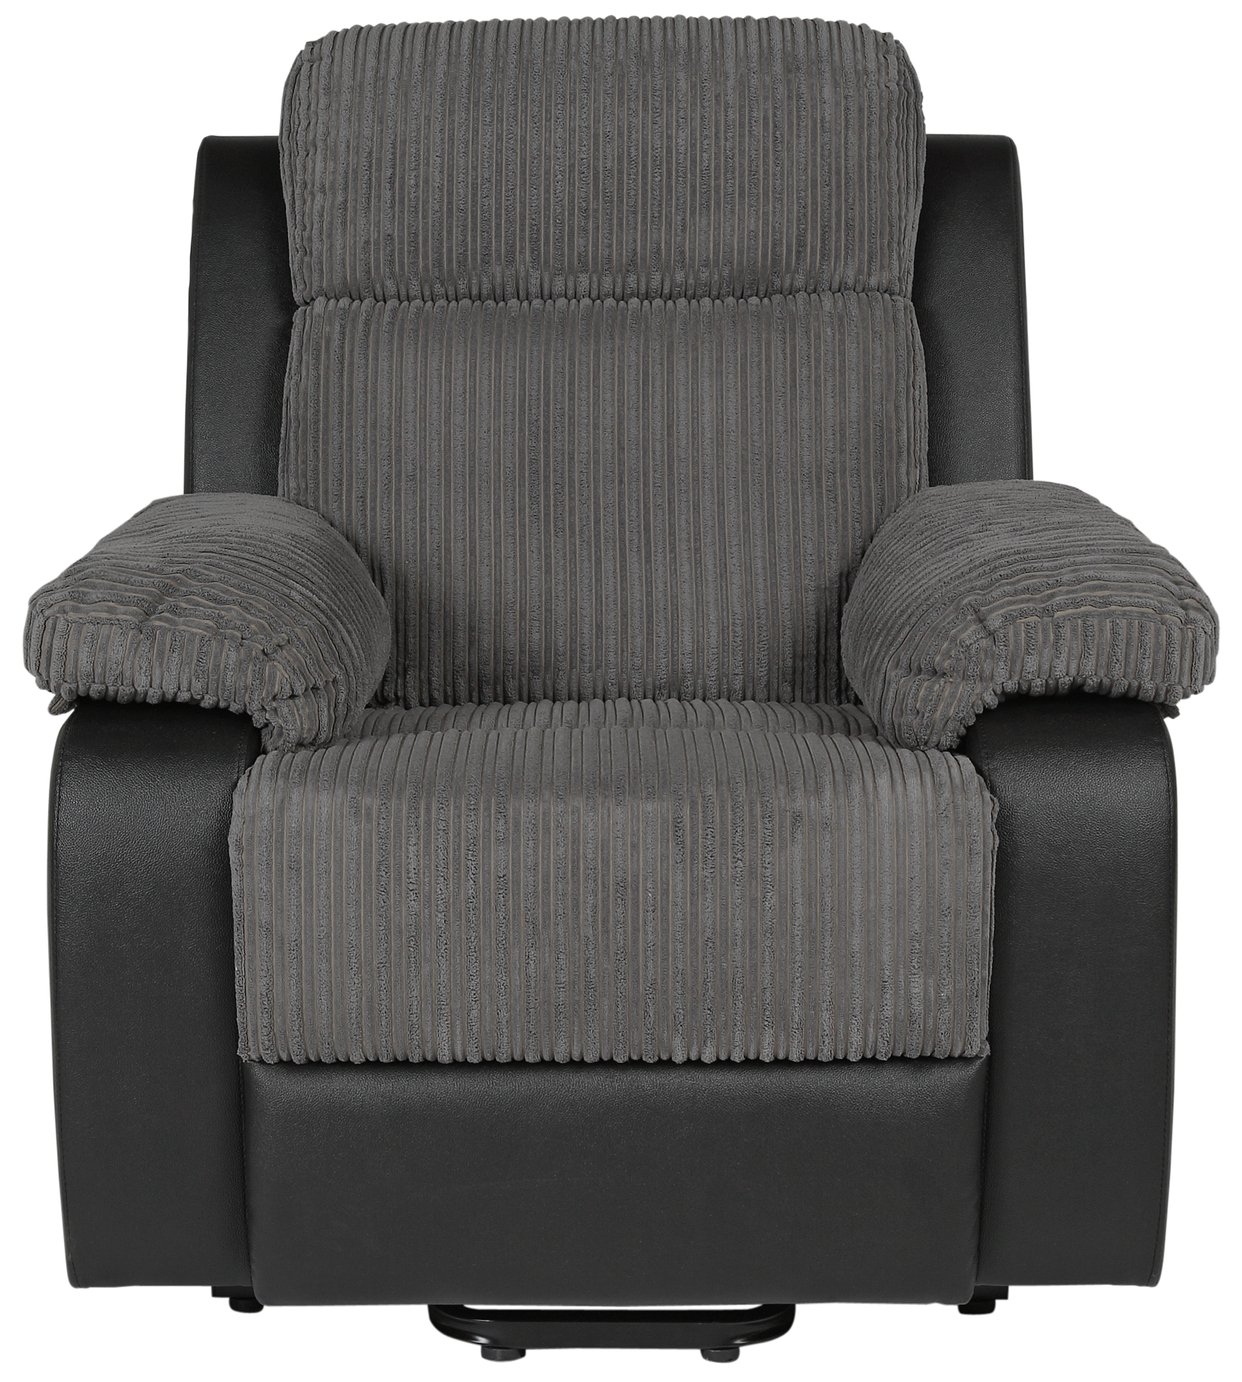 Collection Bradley Riser Recline Fabric Chair   Charcoal